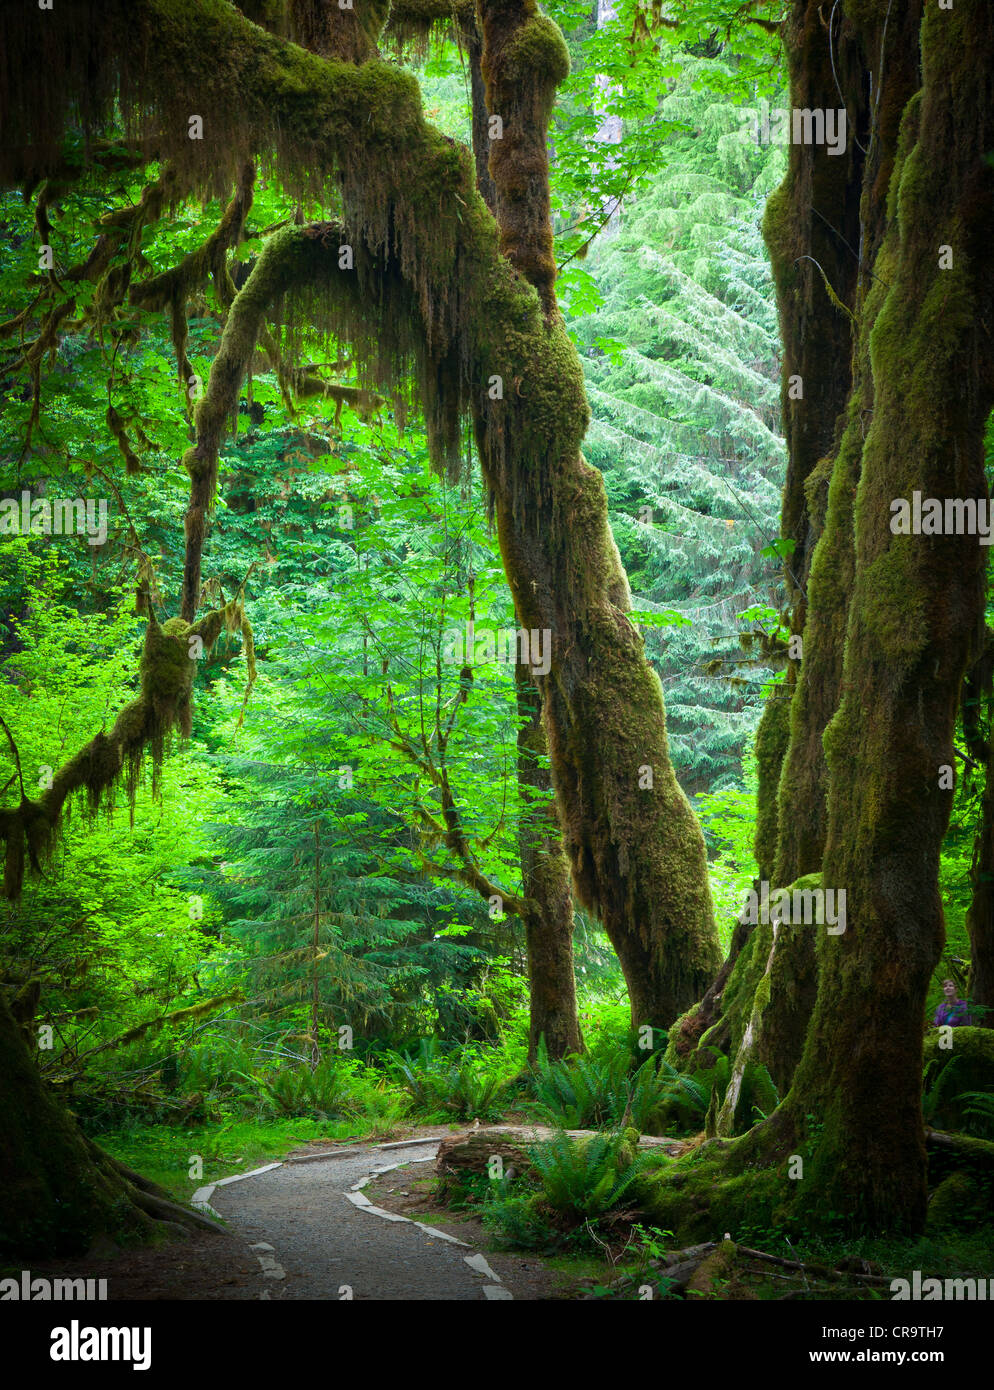 Hoh rain forest and the Hall of Mosses trail in Olympic National Park in the spring - Stock Image